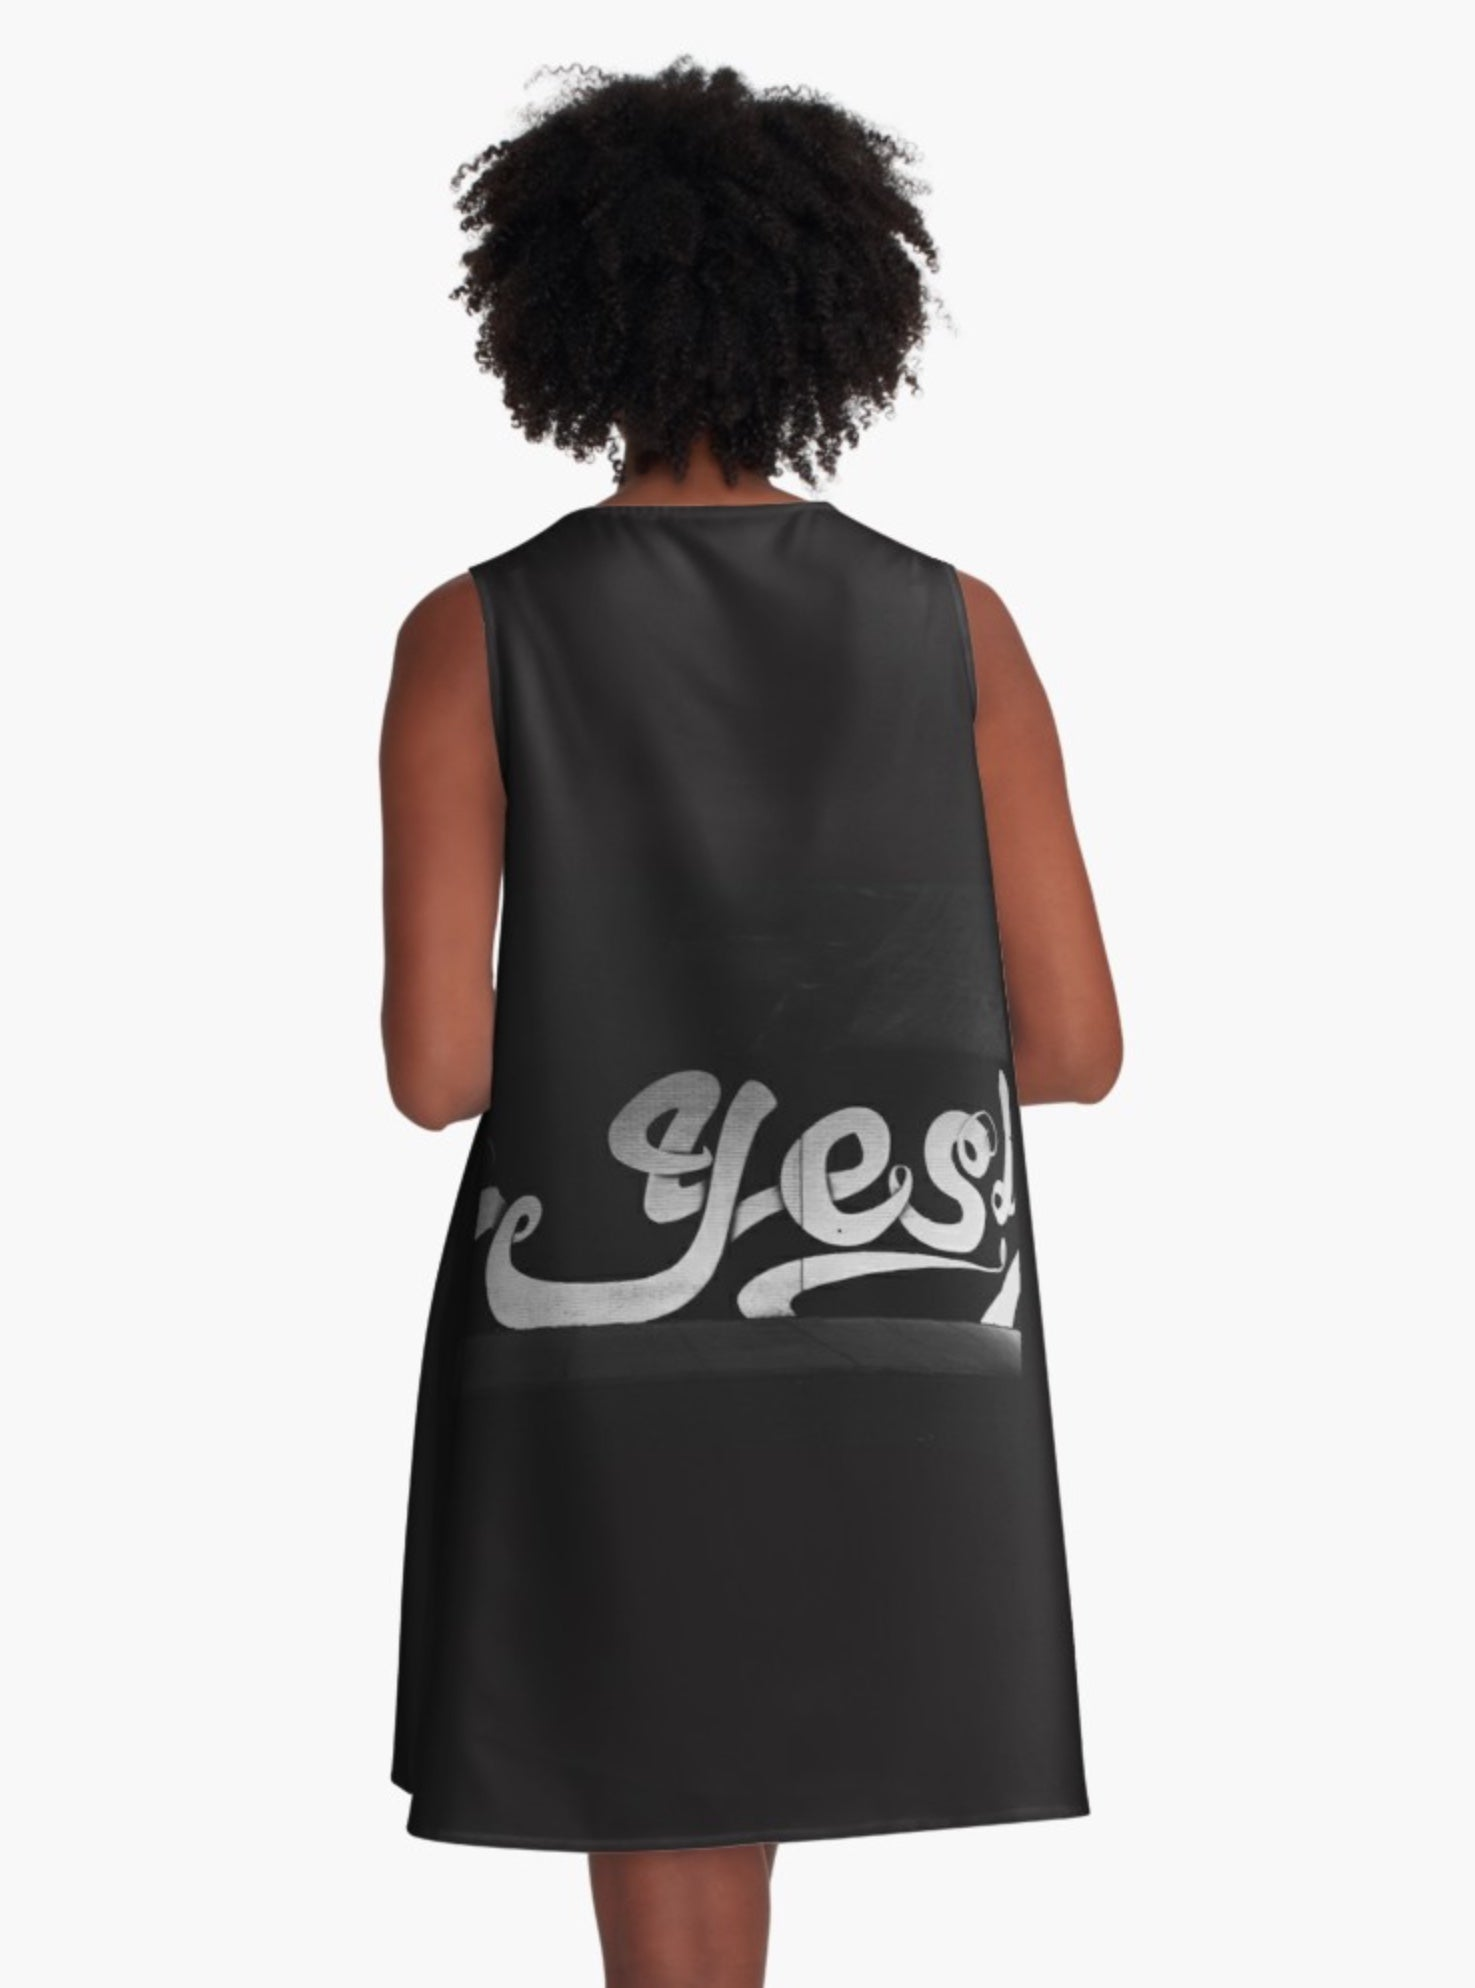 Yes! A-Line Dress